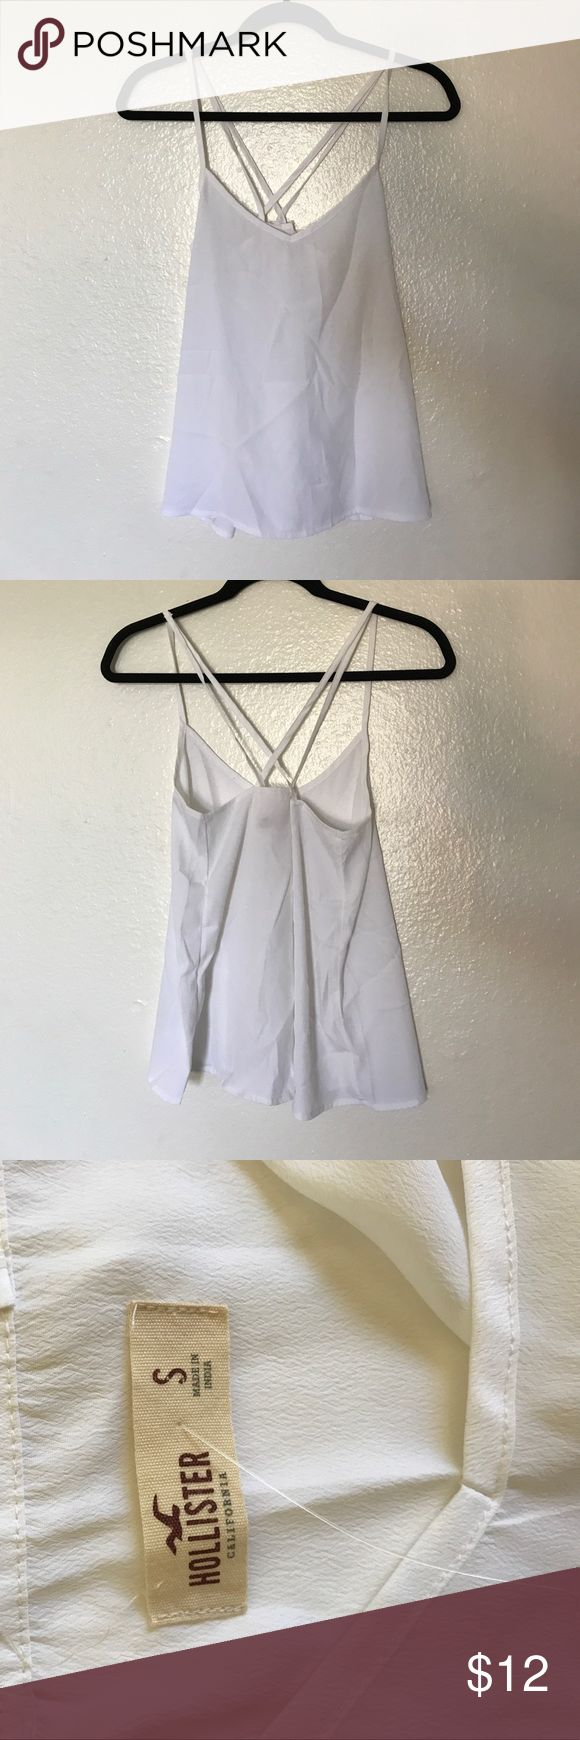 Hollister White Tank Top Only worn once, doesnt have the tags. No signs of wear, I can steam before shipping it out if you would like (let me know in comments). It is see through, it would be a nice shirt to wear to the beach on top of your bathing suit or you could just wear a bralette underneath! Its a little tight in the chest area for me an i'm a 34C. Hollister Tops Tank Tops